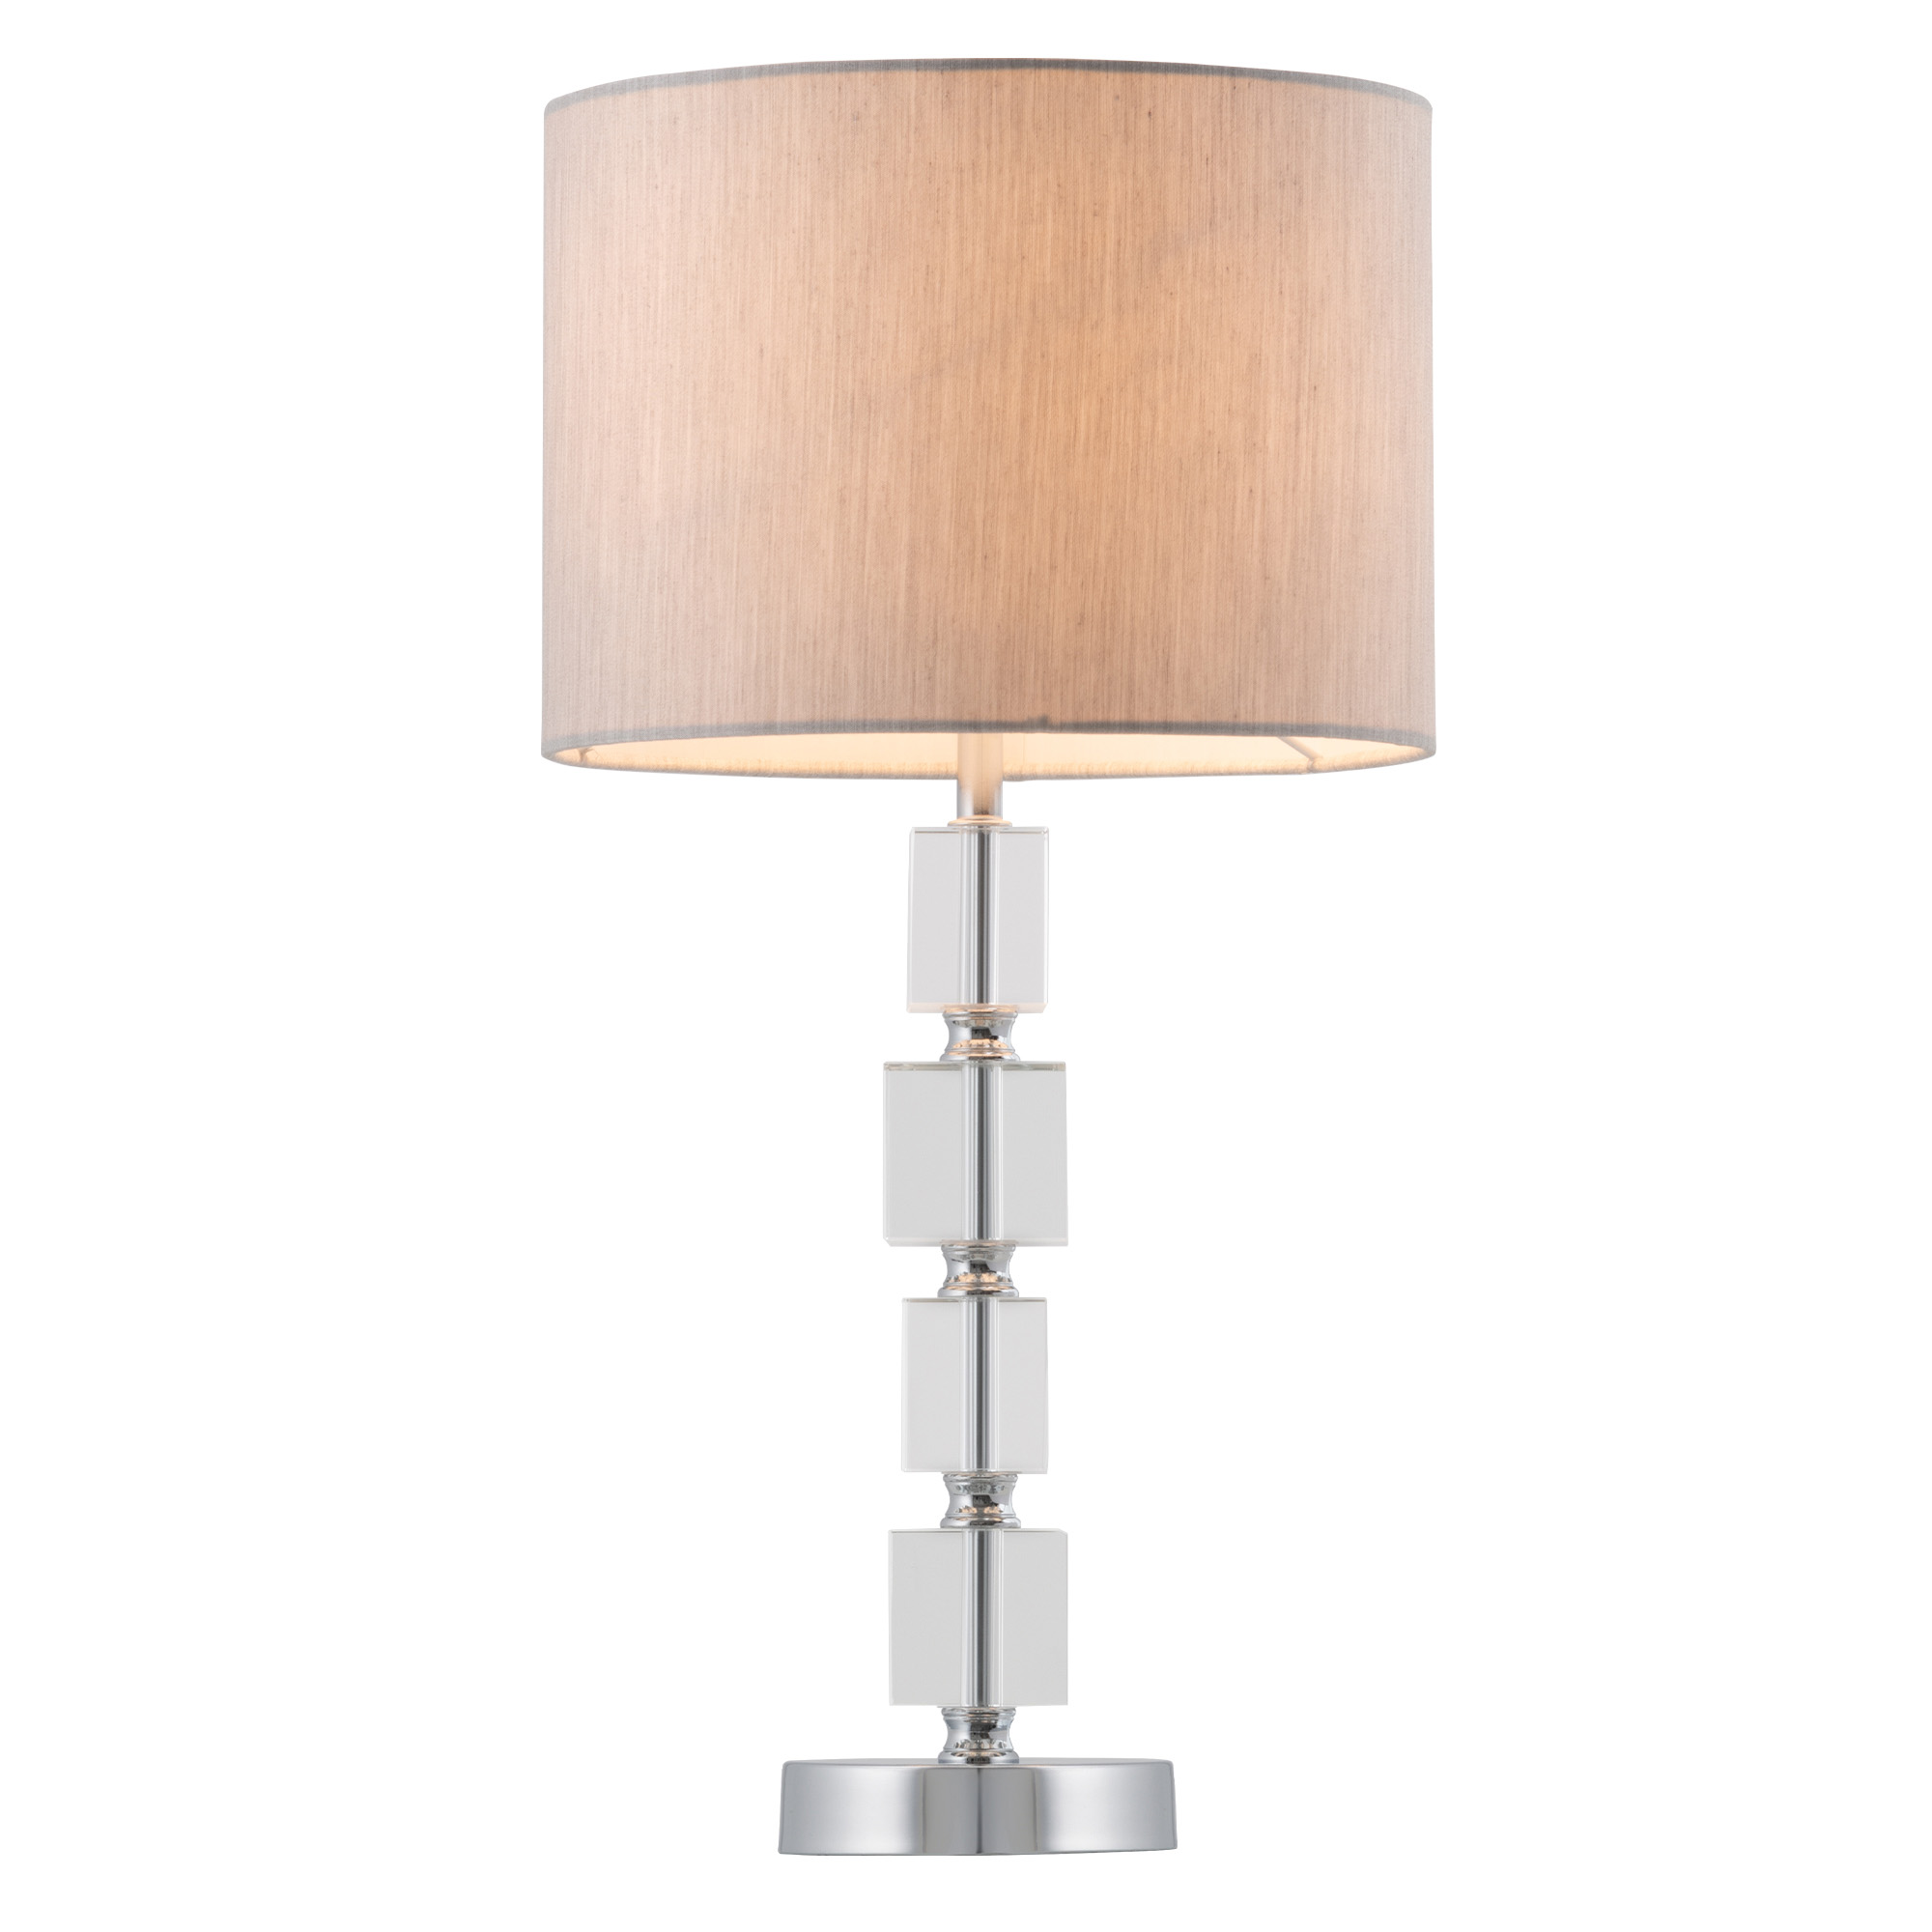 Ester Table Lamp image